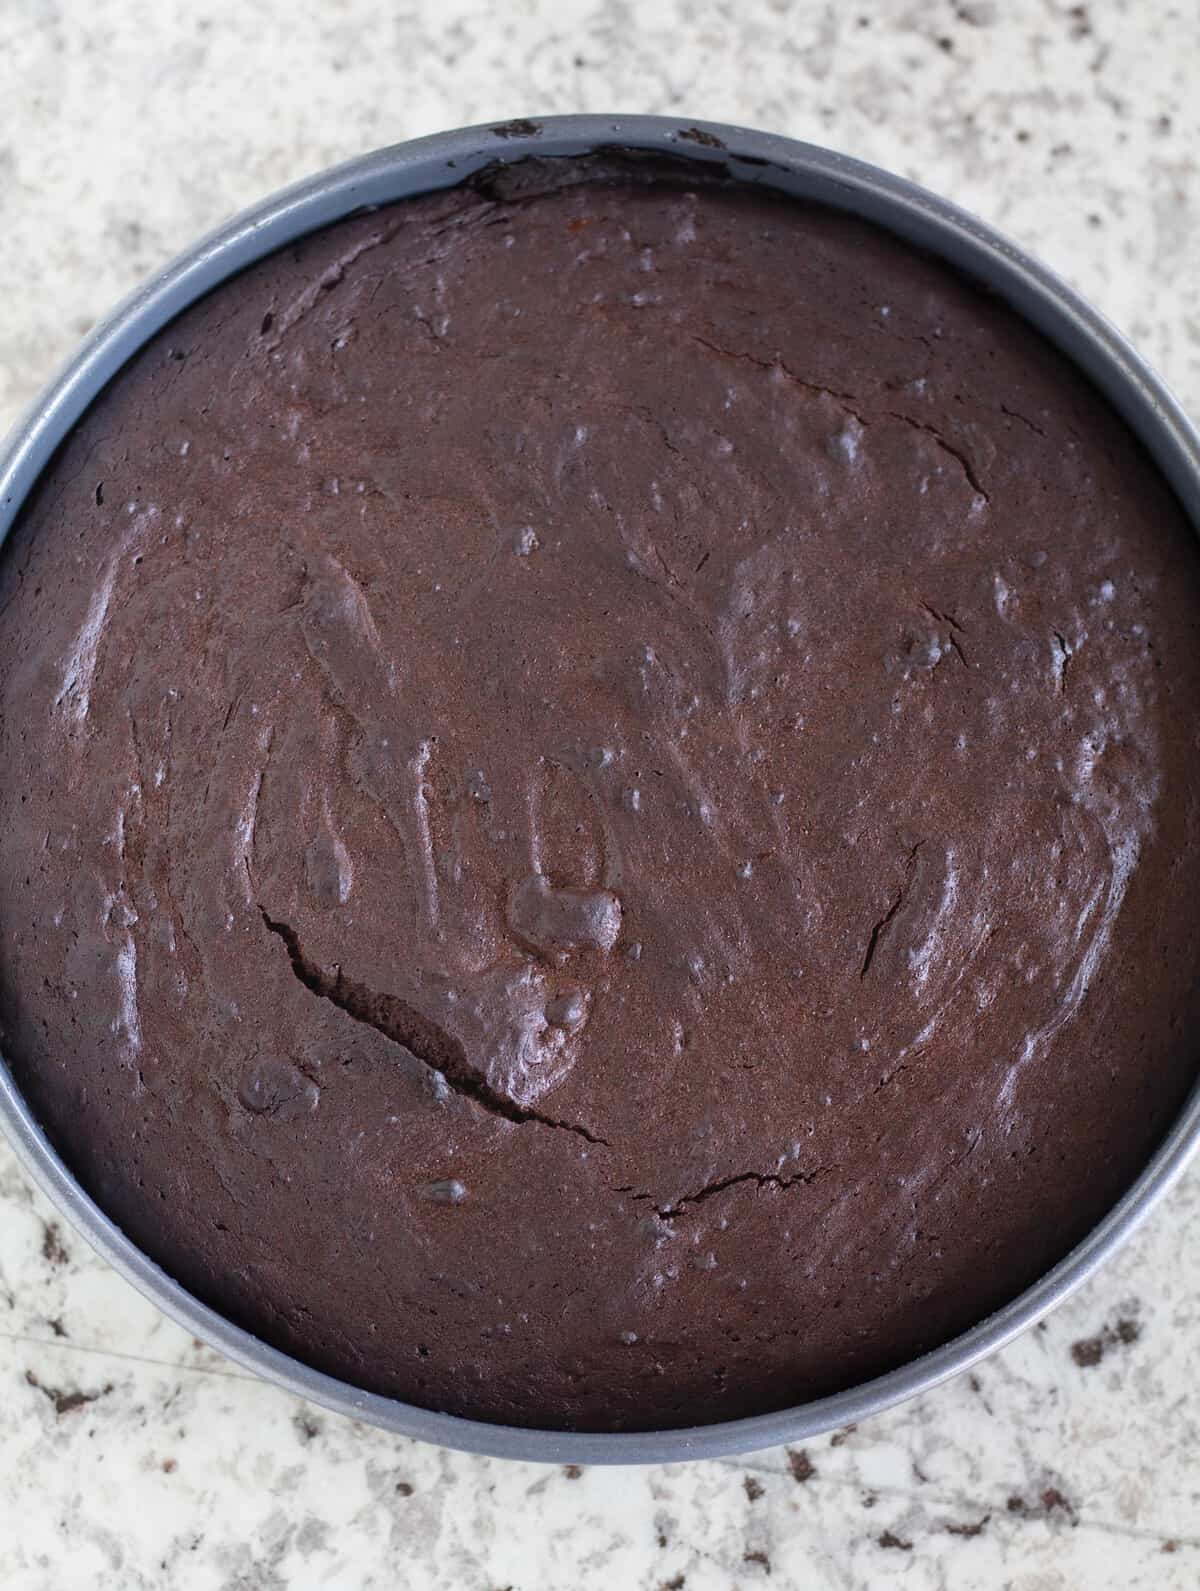 Freshly baked cake in cake pan